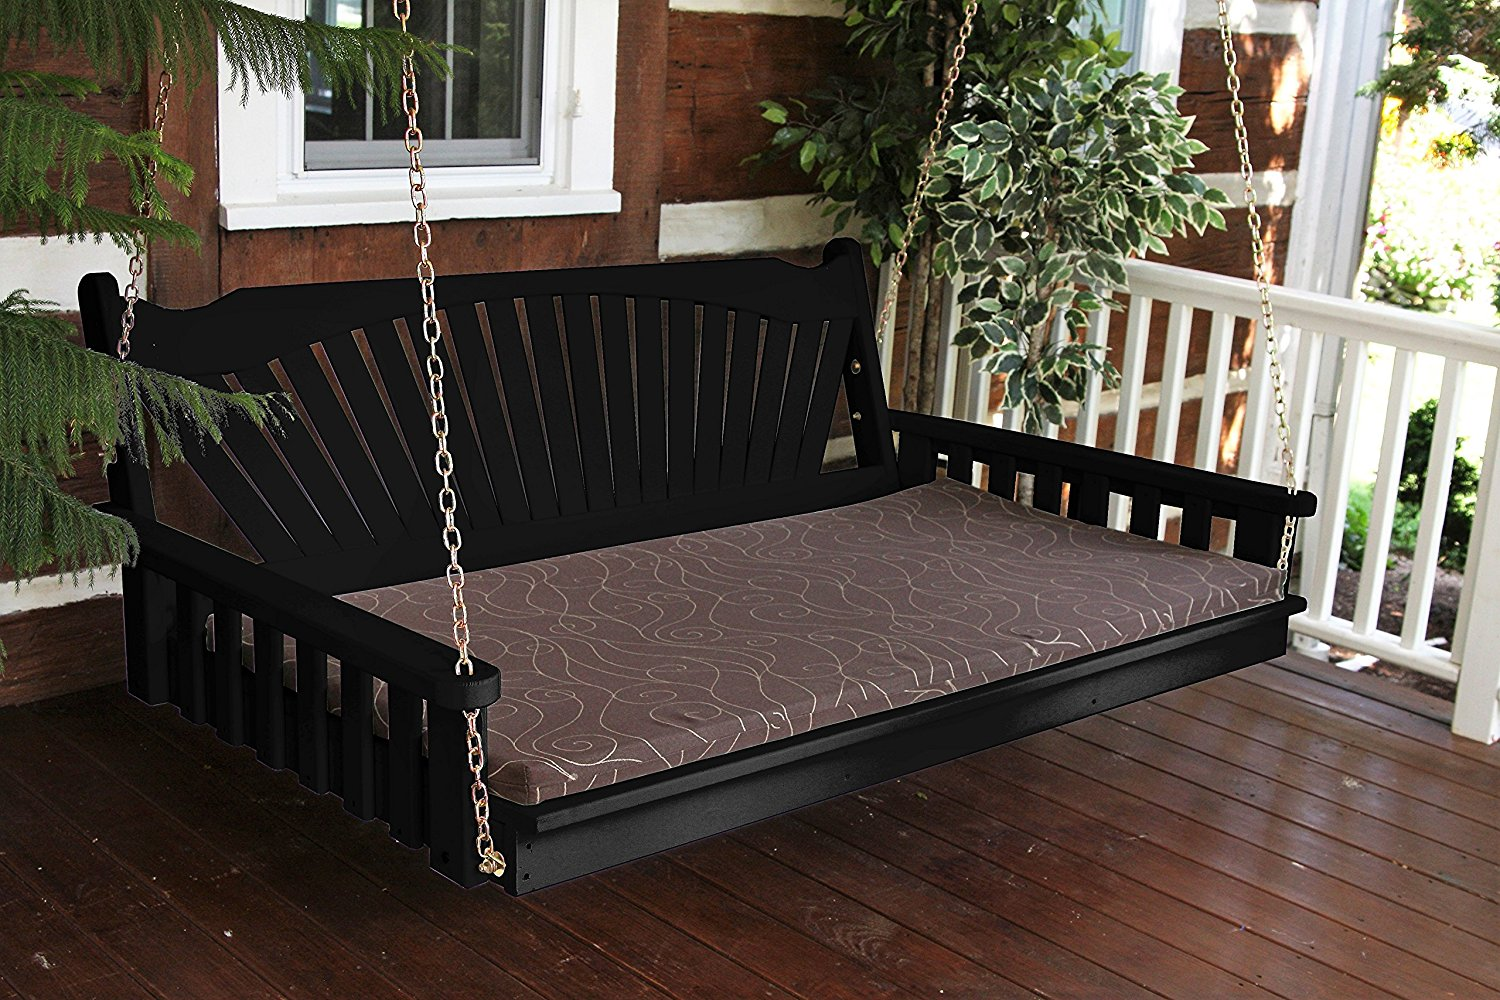 Swinging porch bed #7